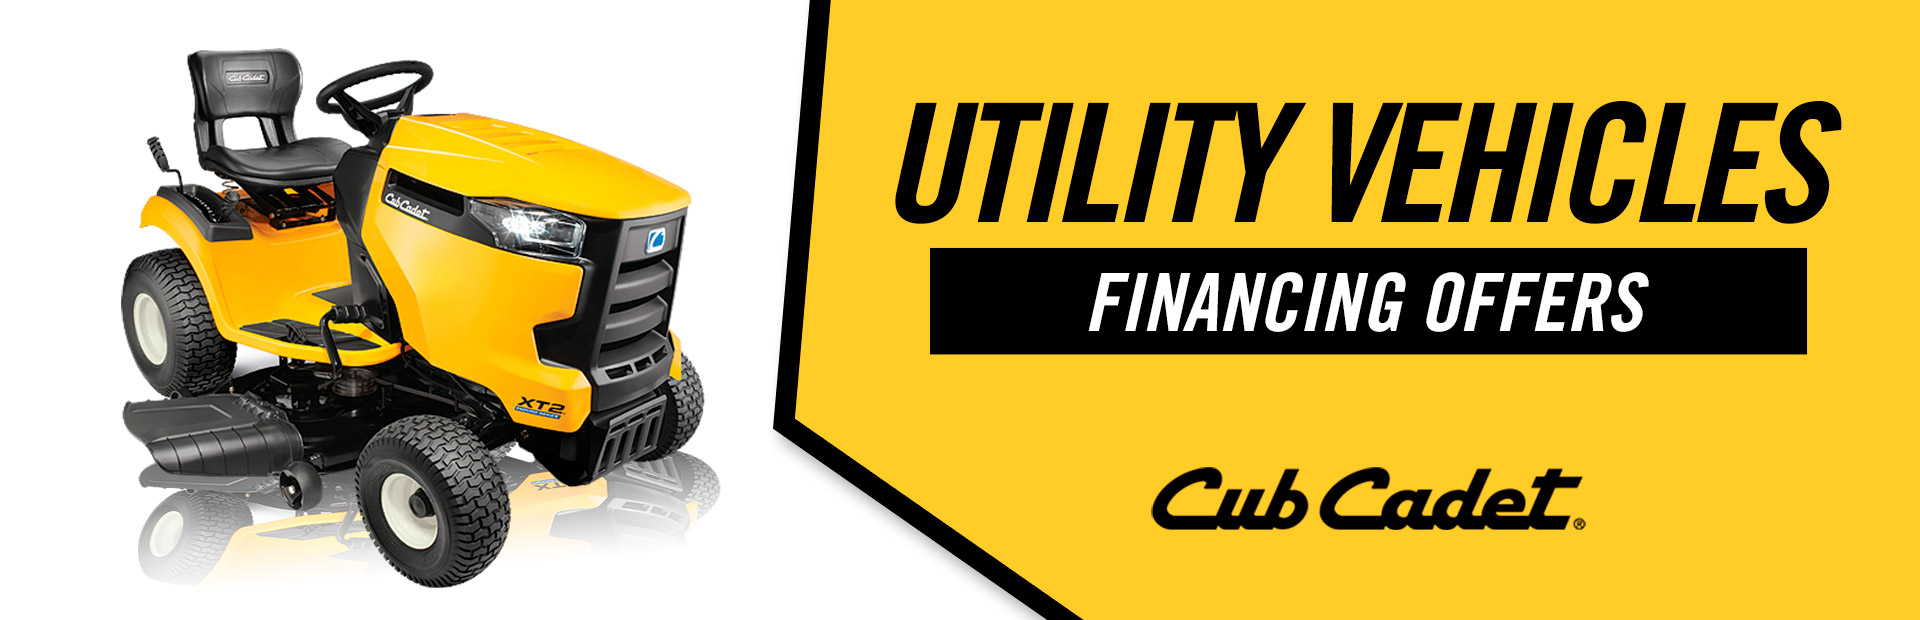 Cub Cadet: Utility Vehicles Financing Offers